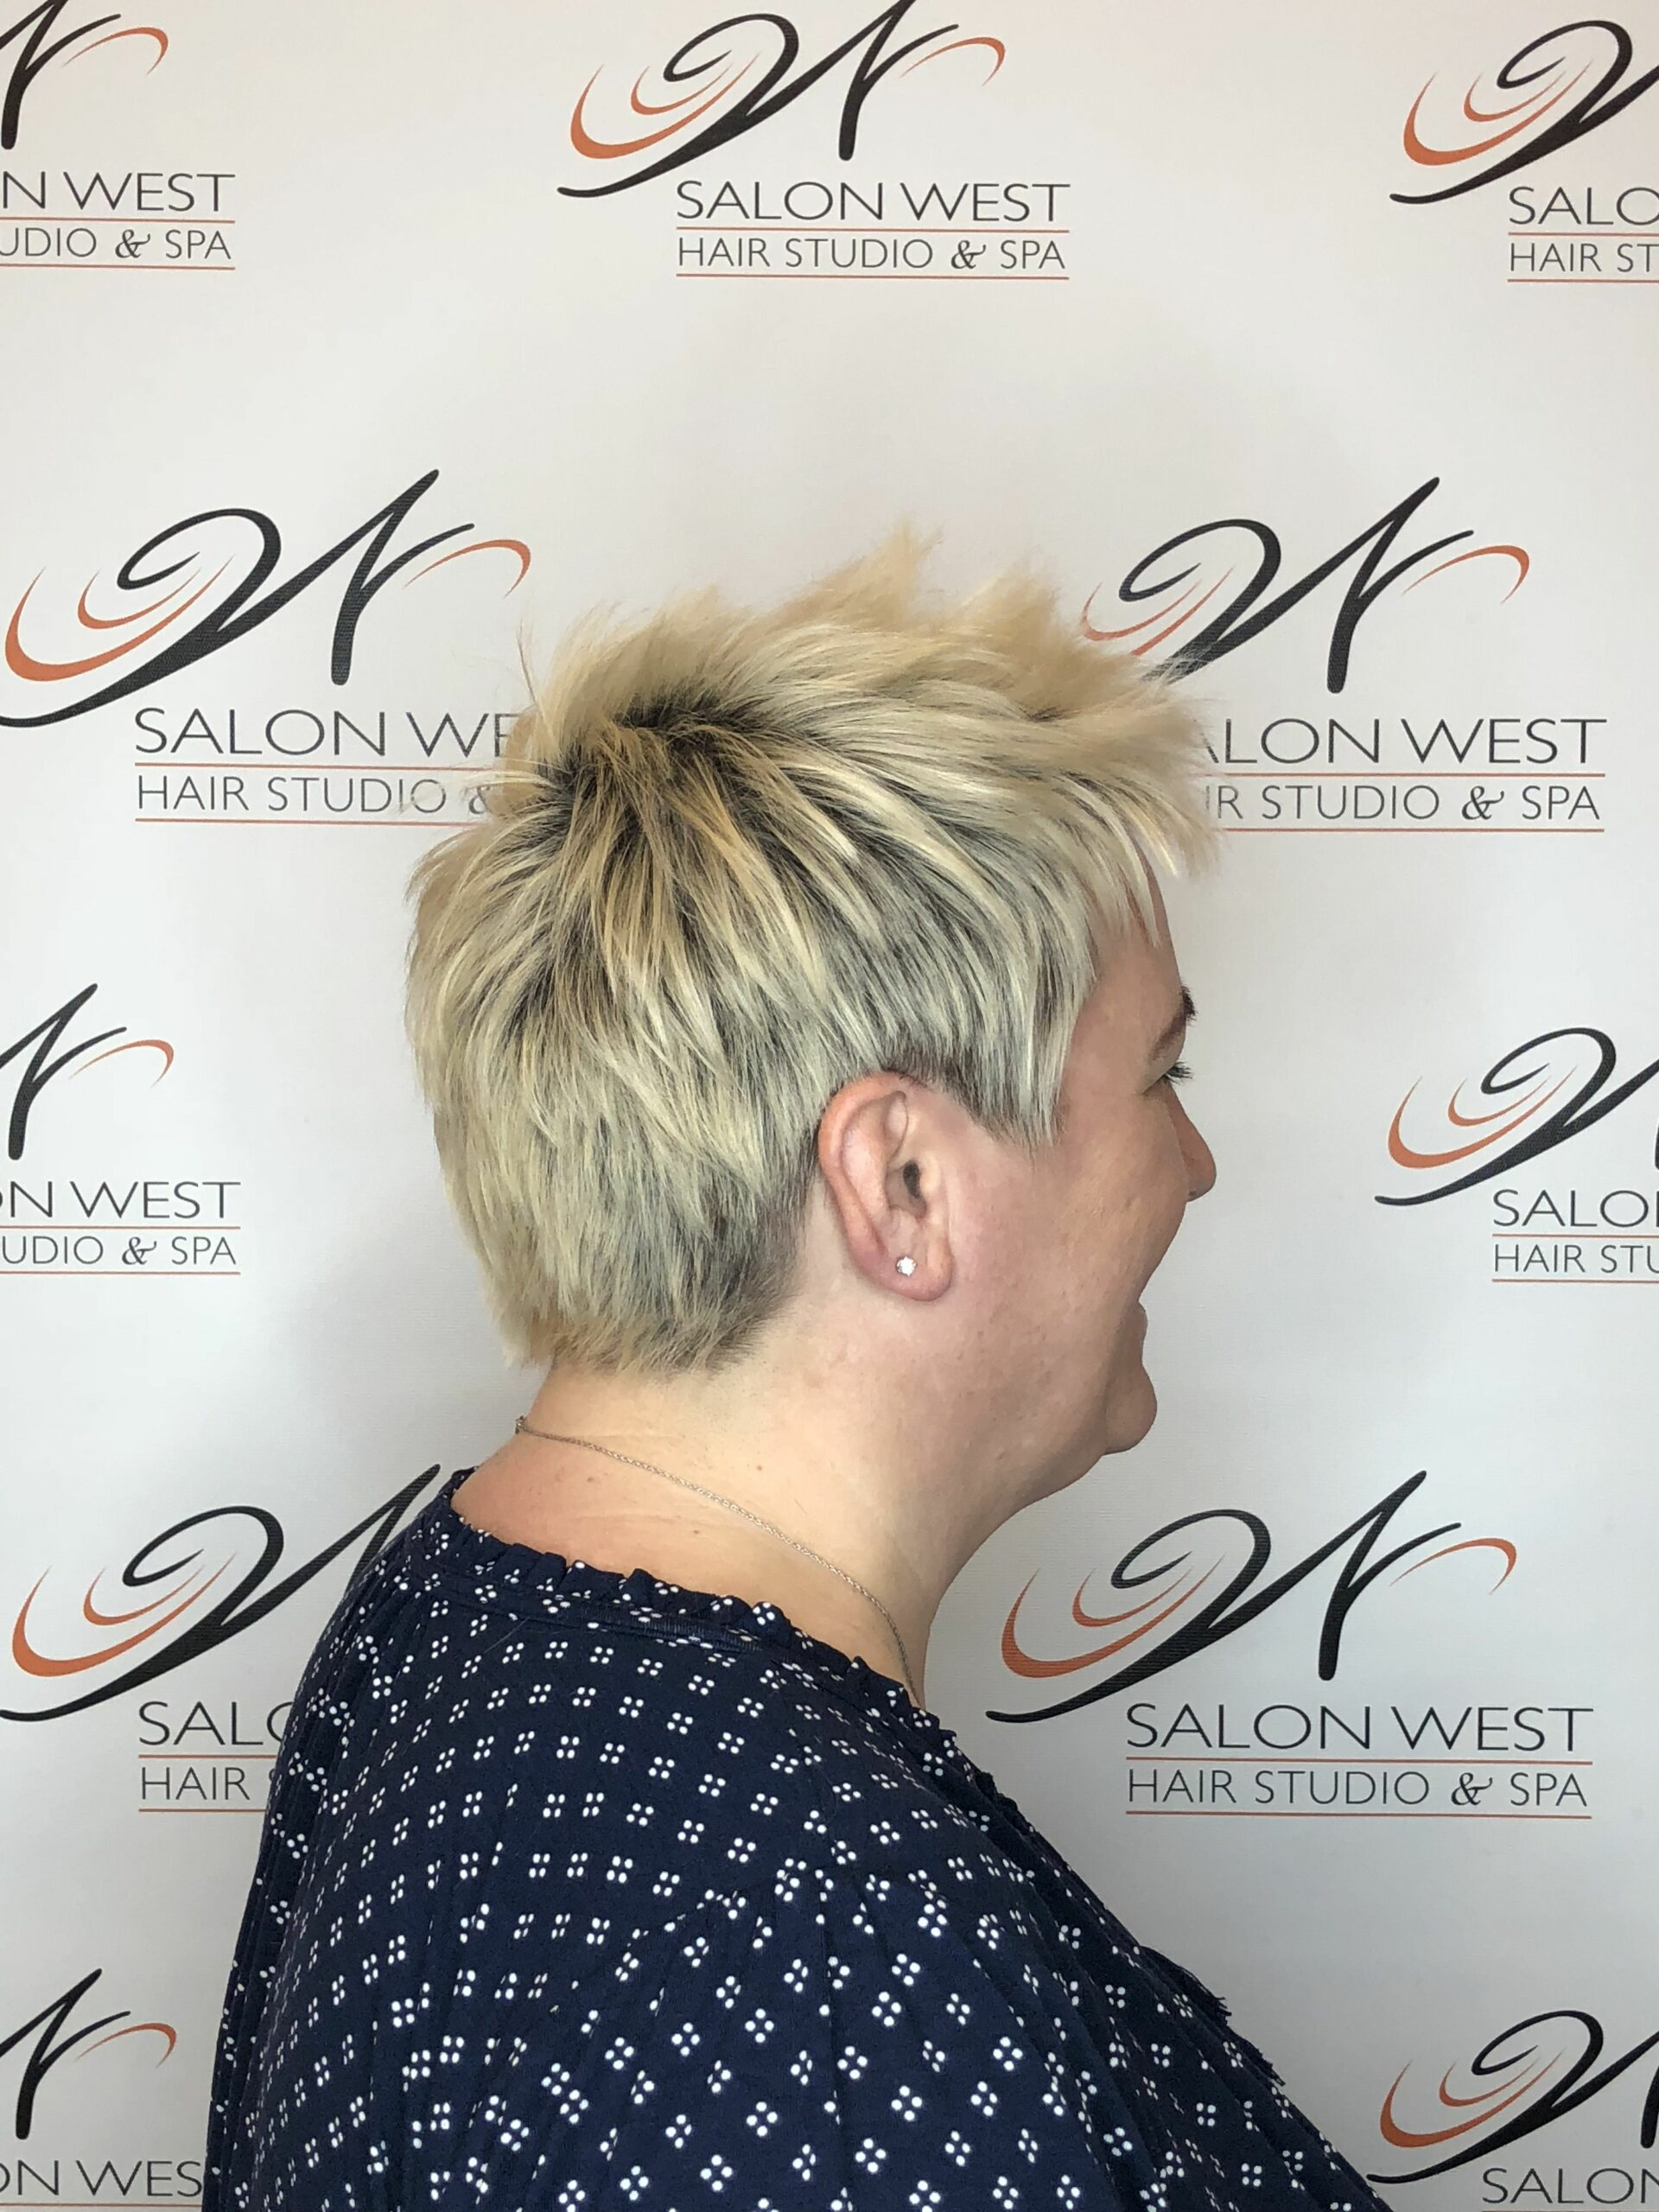 65 Pixie Haircuts for Women Over 60 (Updated 2021) 735358cfead5a4690ca39bed6a8b49f4-scaled